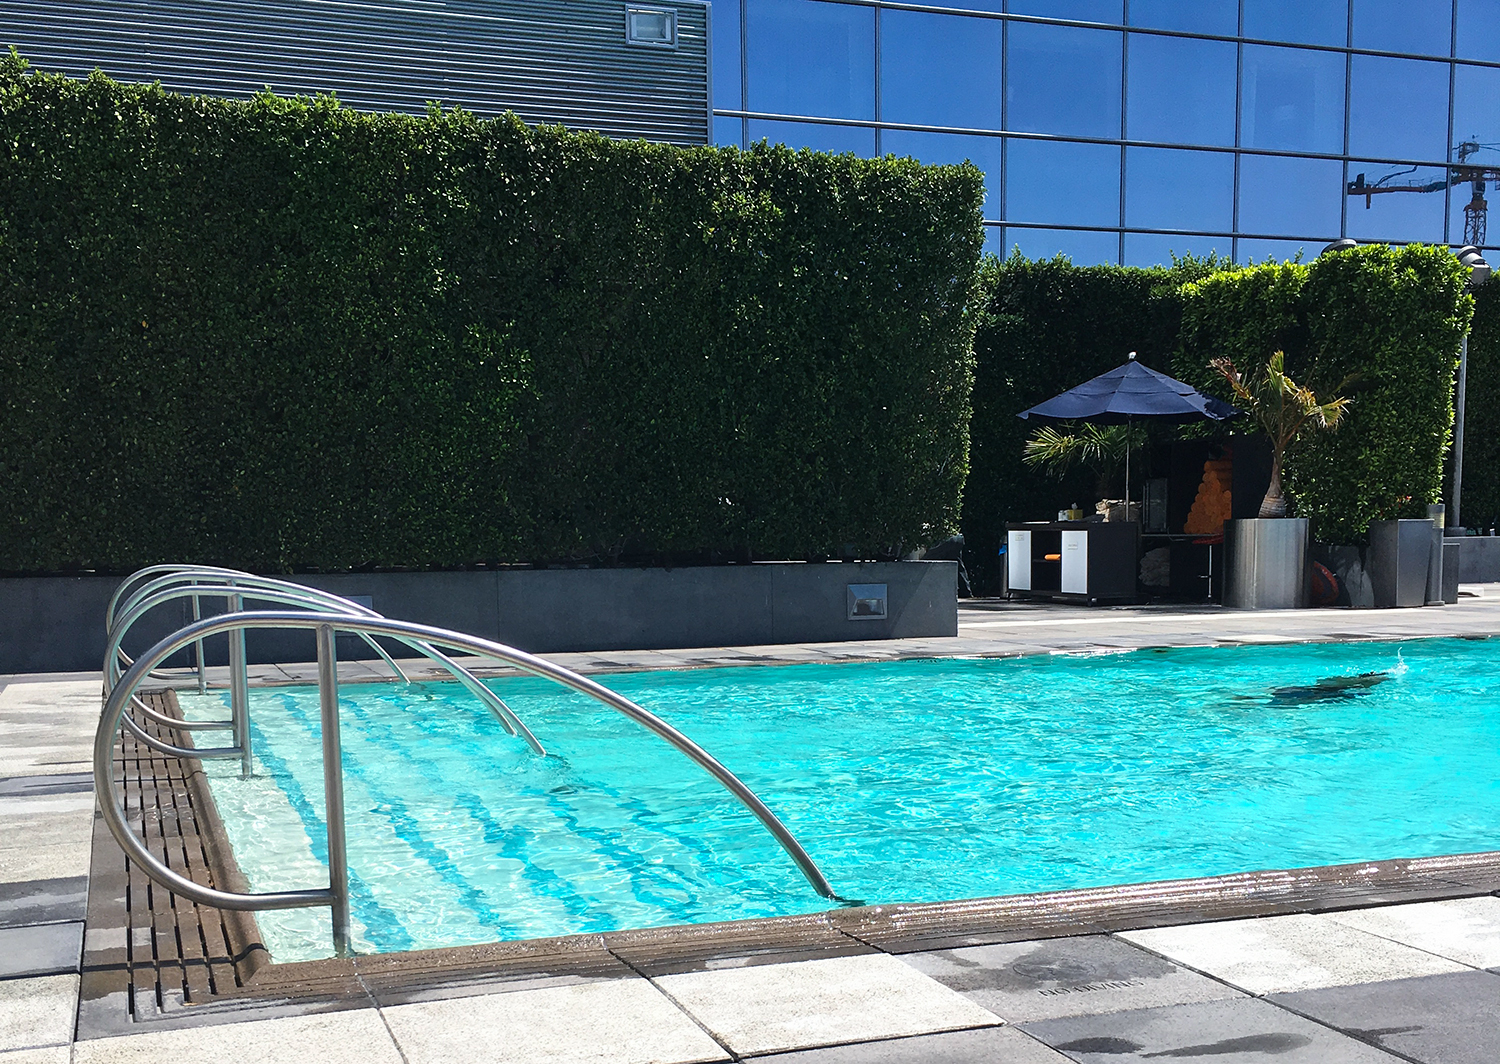 Marriott hotel, Downtown Los ANgeles, California. Outdoor Swimming pool